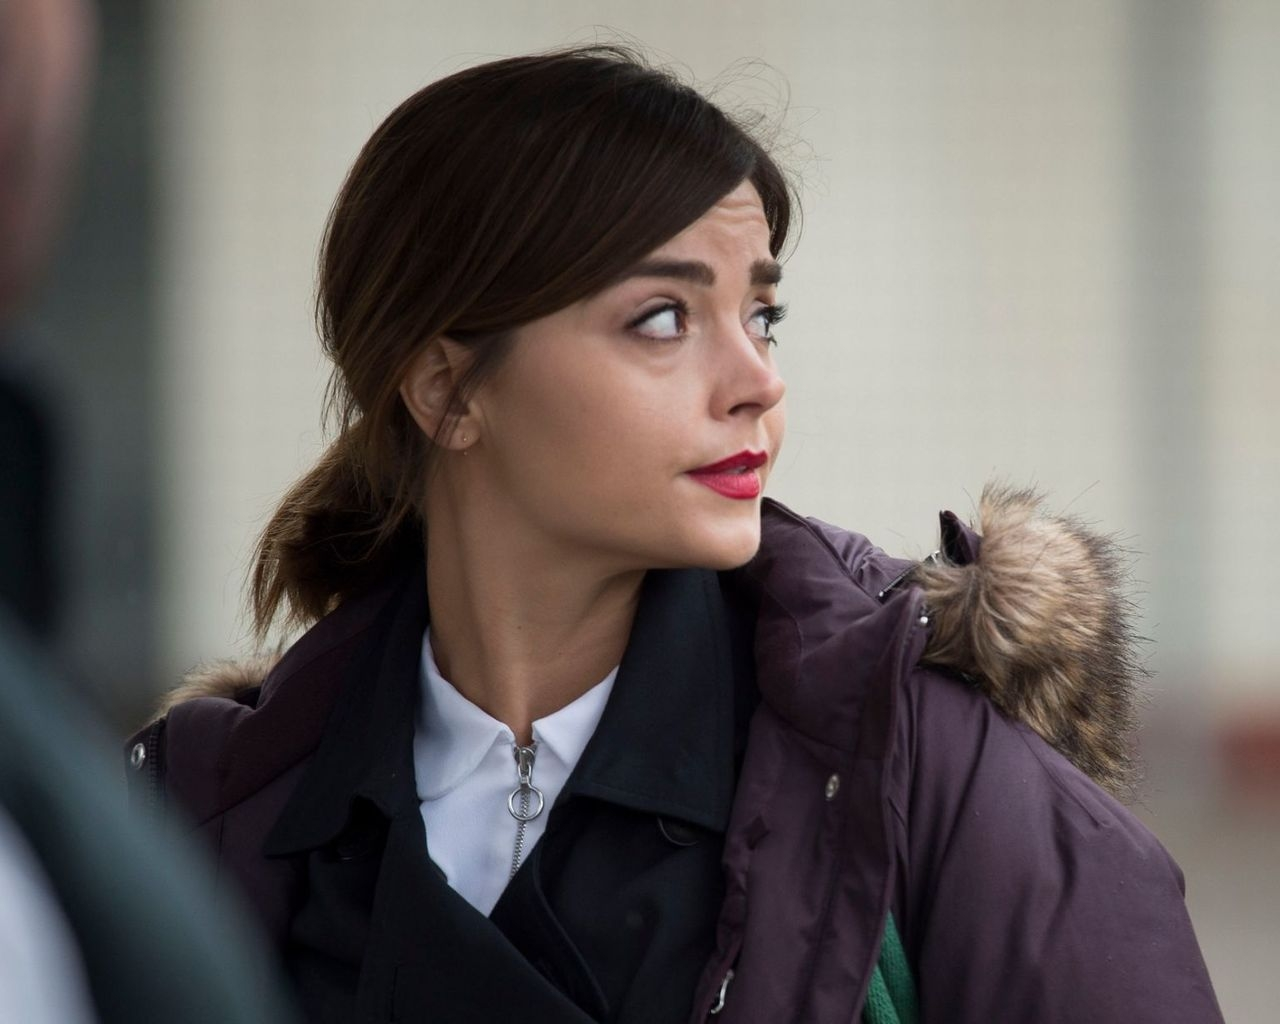 Jenna Coleman from Doctor Who for 1280 x 1024 resolution